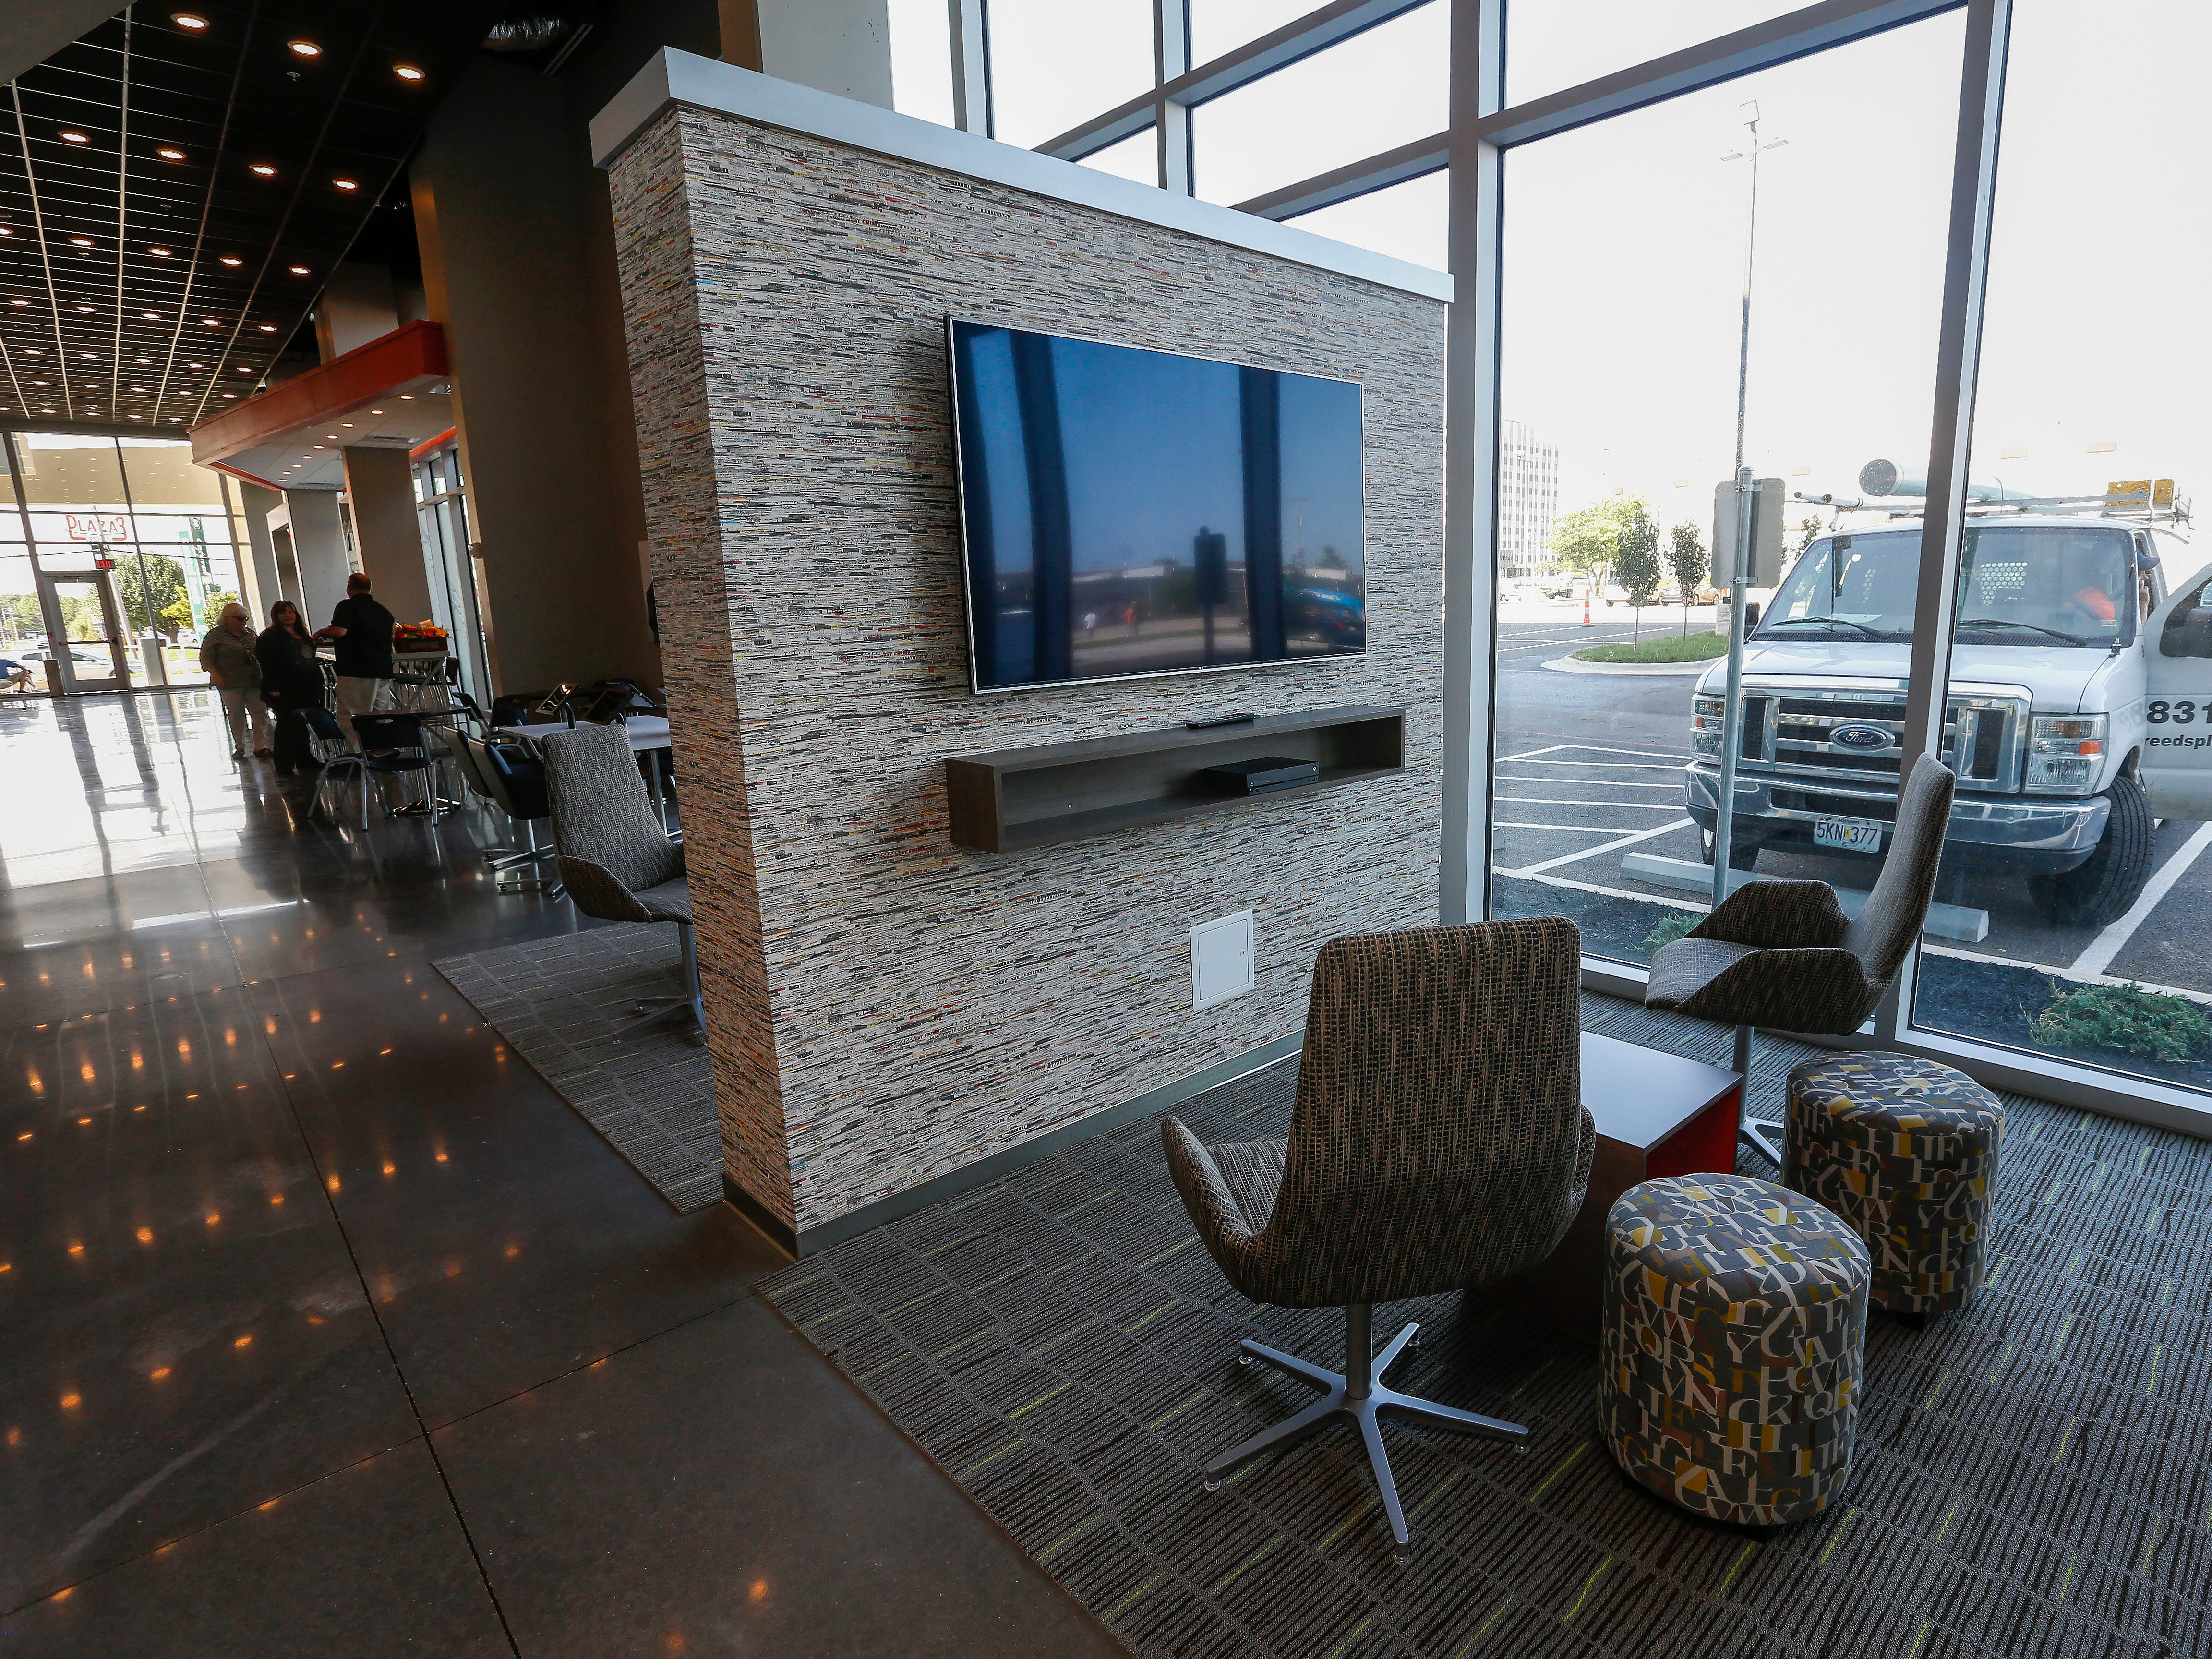 A look at one of the gaming pods at the new Vib Hotel, located at 1845 E Sunshine St. The hotel will hold its grand opening on Friday, Aug. 10, 2018.